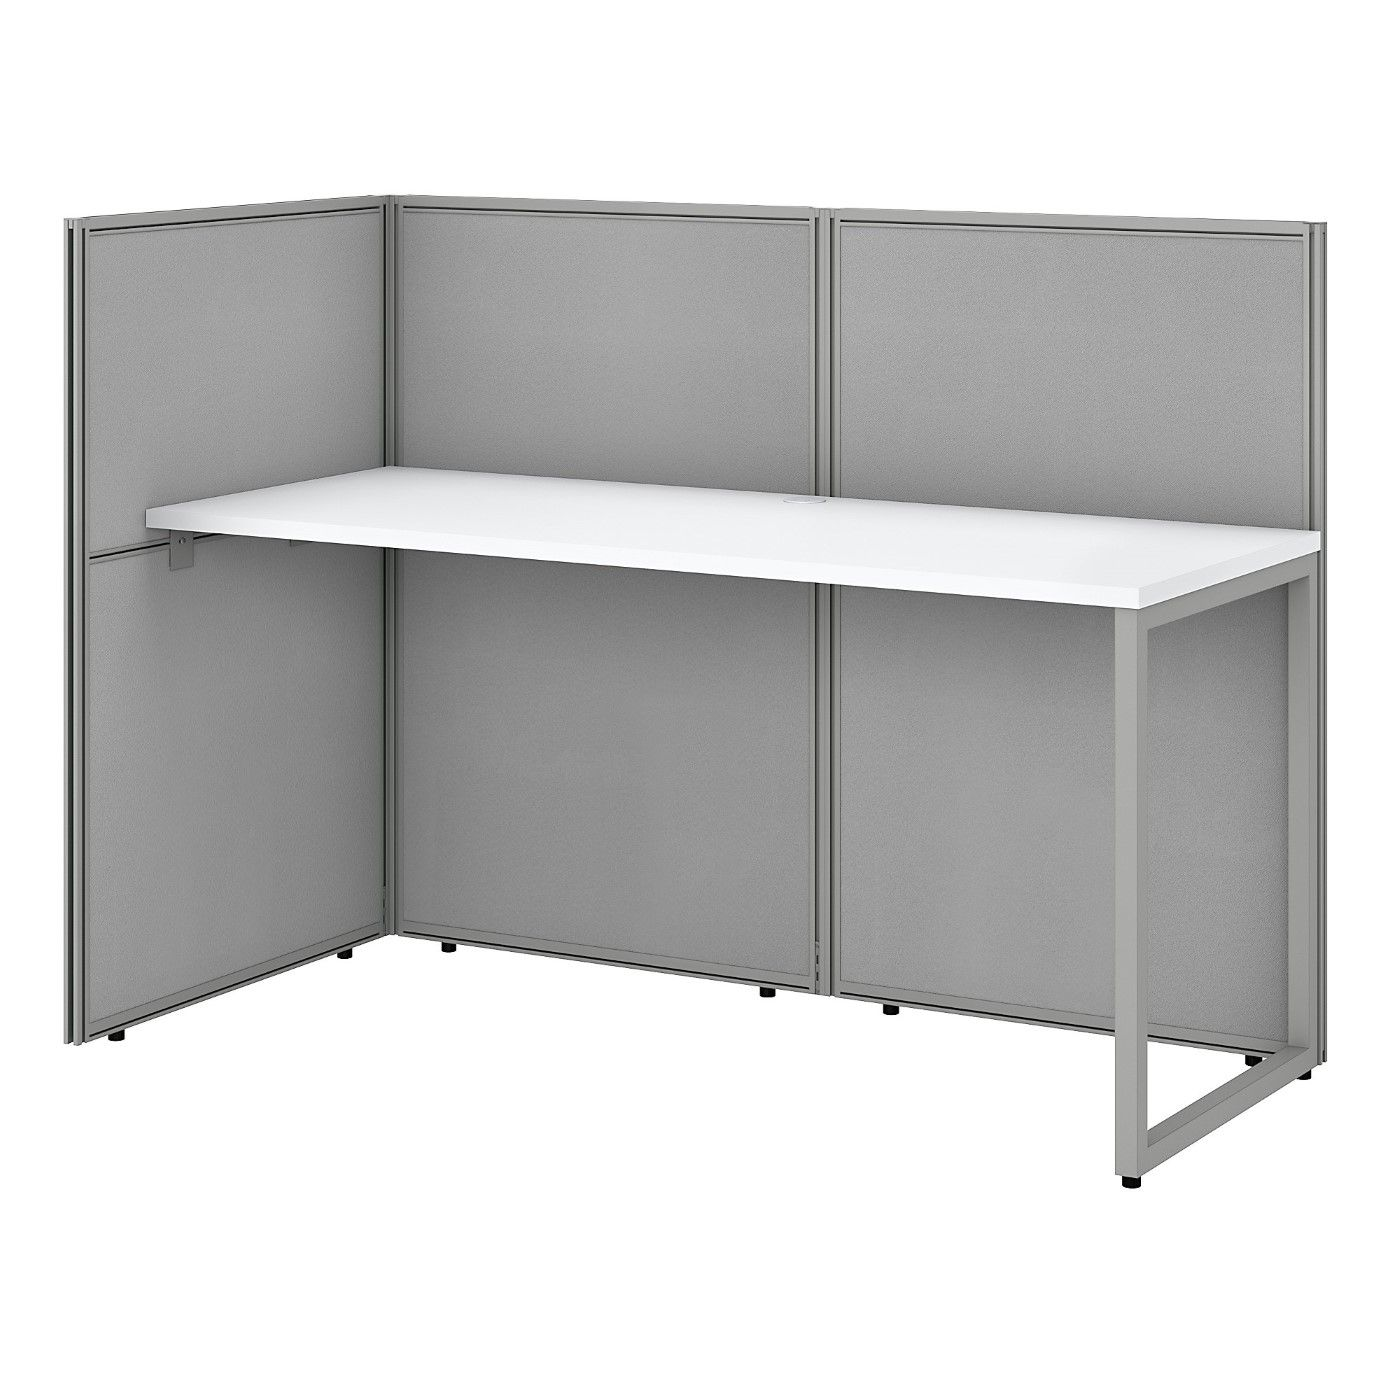 BUSH BUSINESS FURNITURE EASY OFFICE 60W CUBICLE DESK WORKSTATION WITH 45H OPEN PANELS. FREE SHIPPING SALE DEDUCT 10% MORE ENTER '10percent' IN COUPON CODE BOX WHILE CHECKING OUT. ENDS 5-31-20.